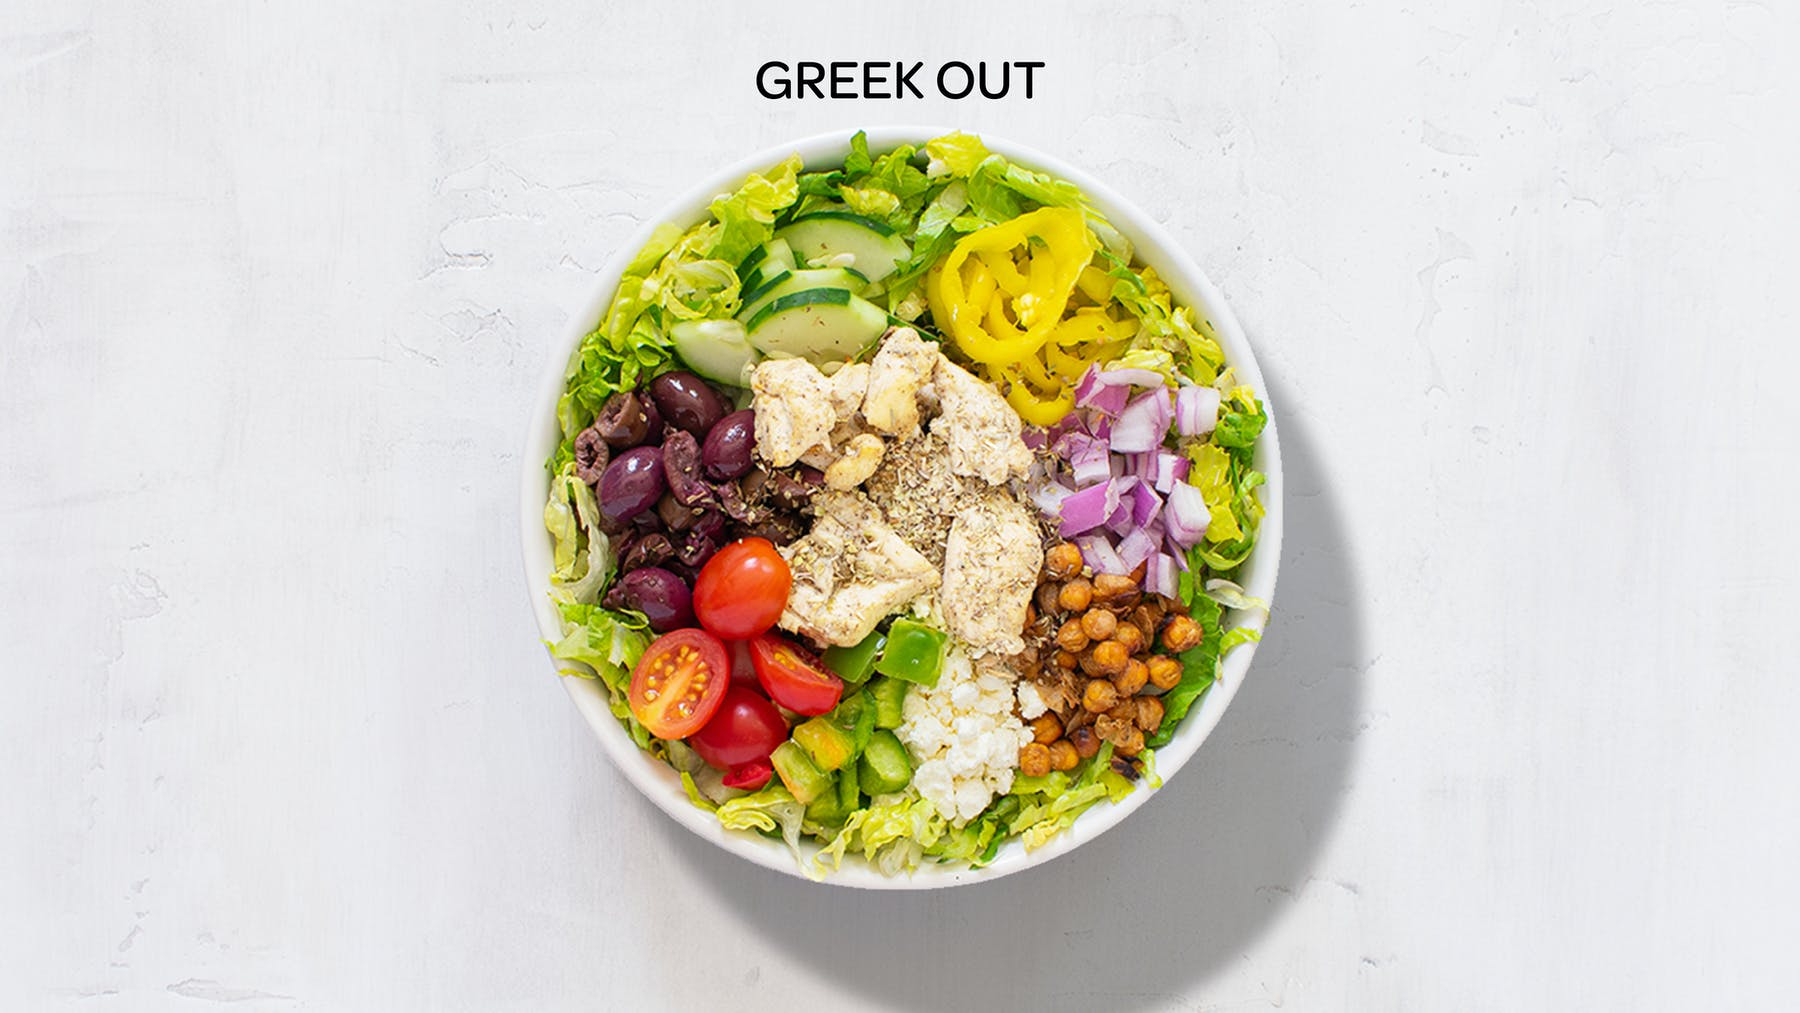 a bowl of greek out salad